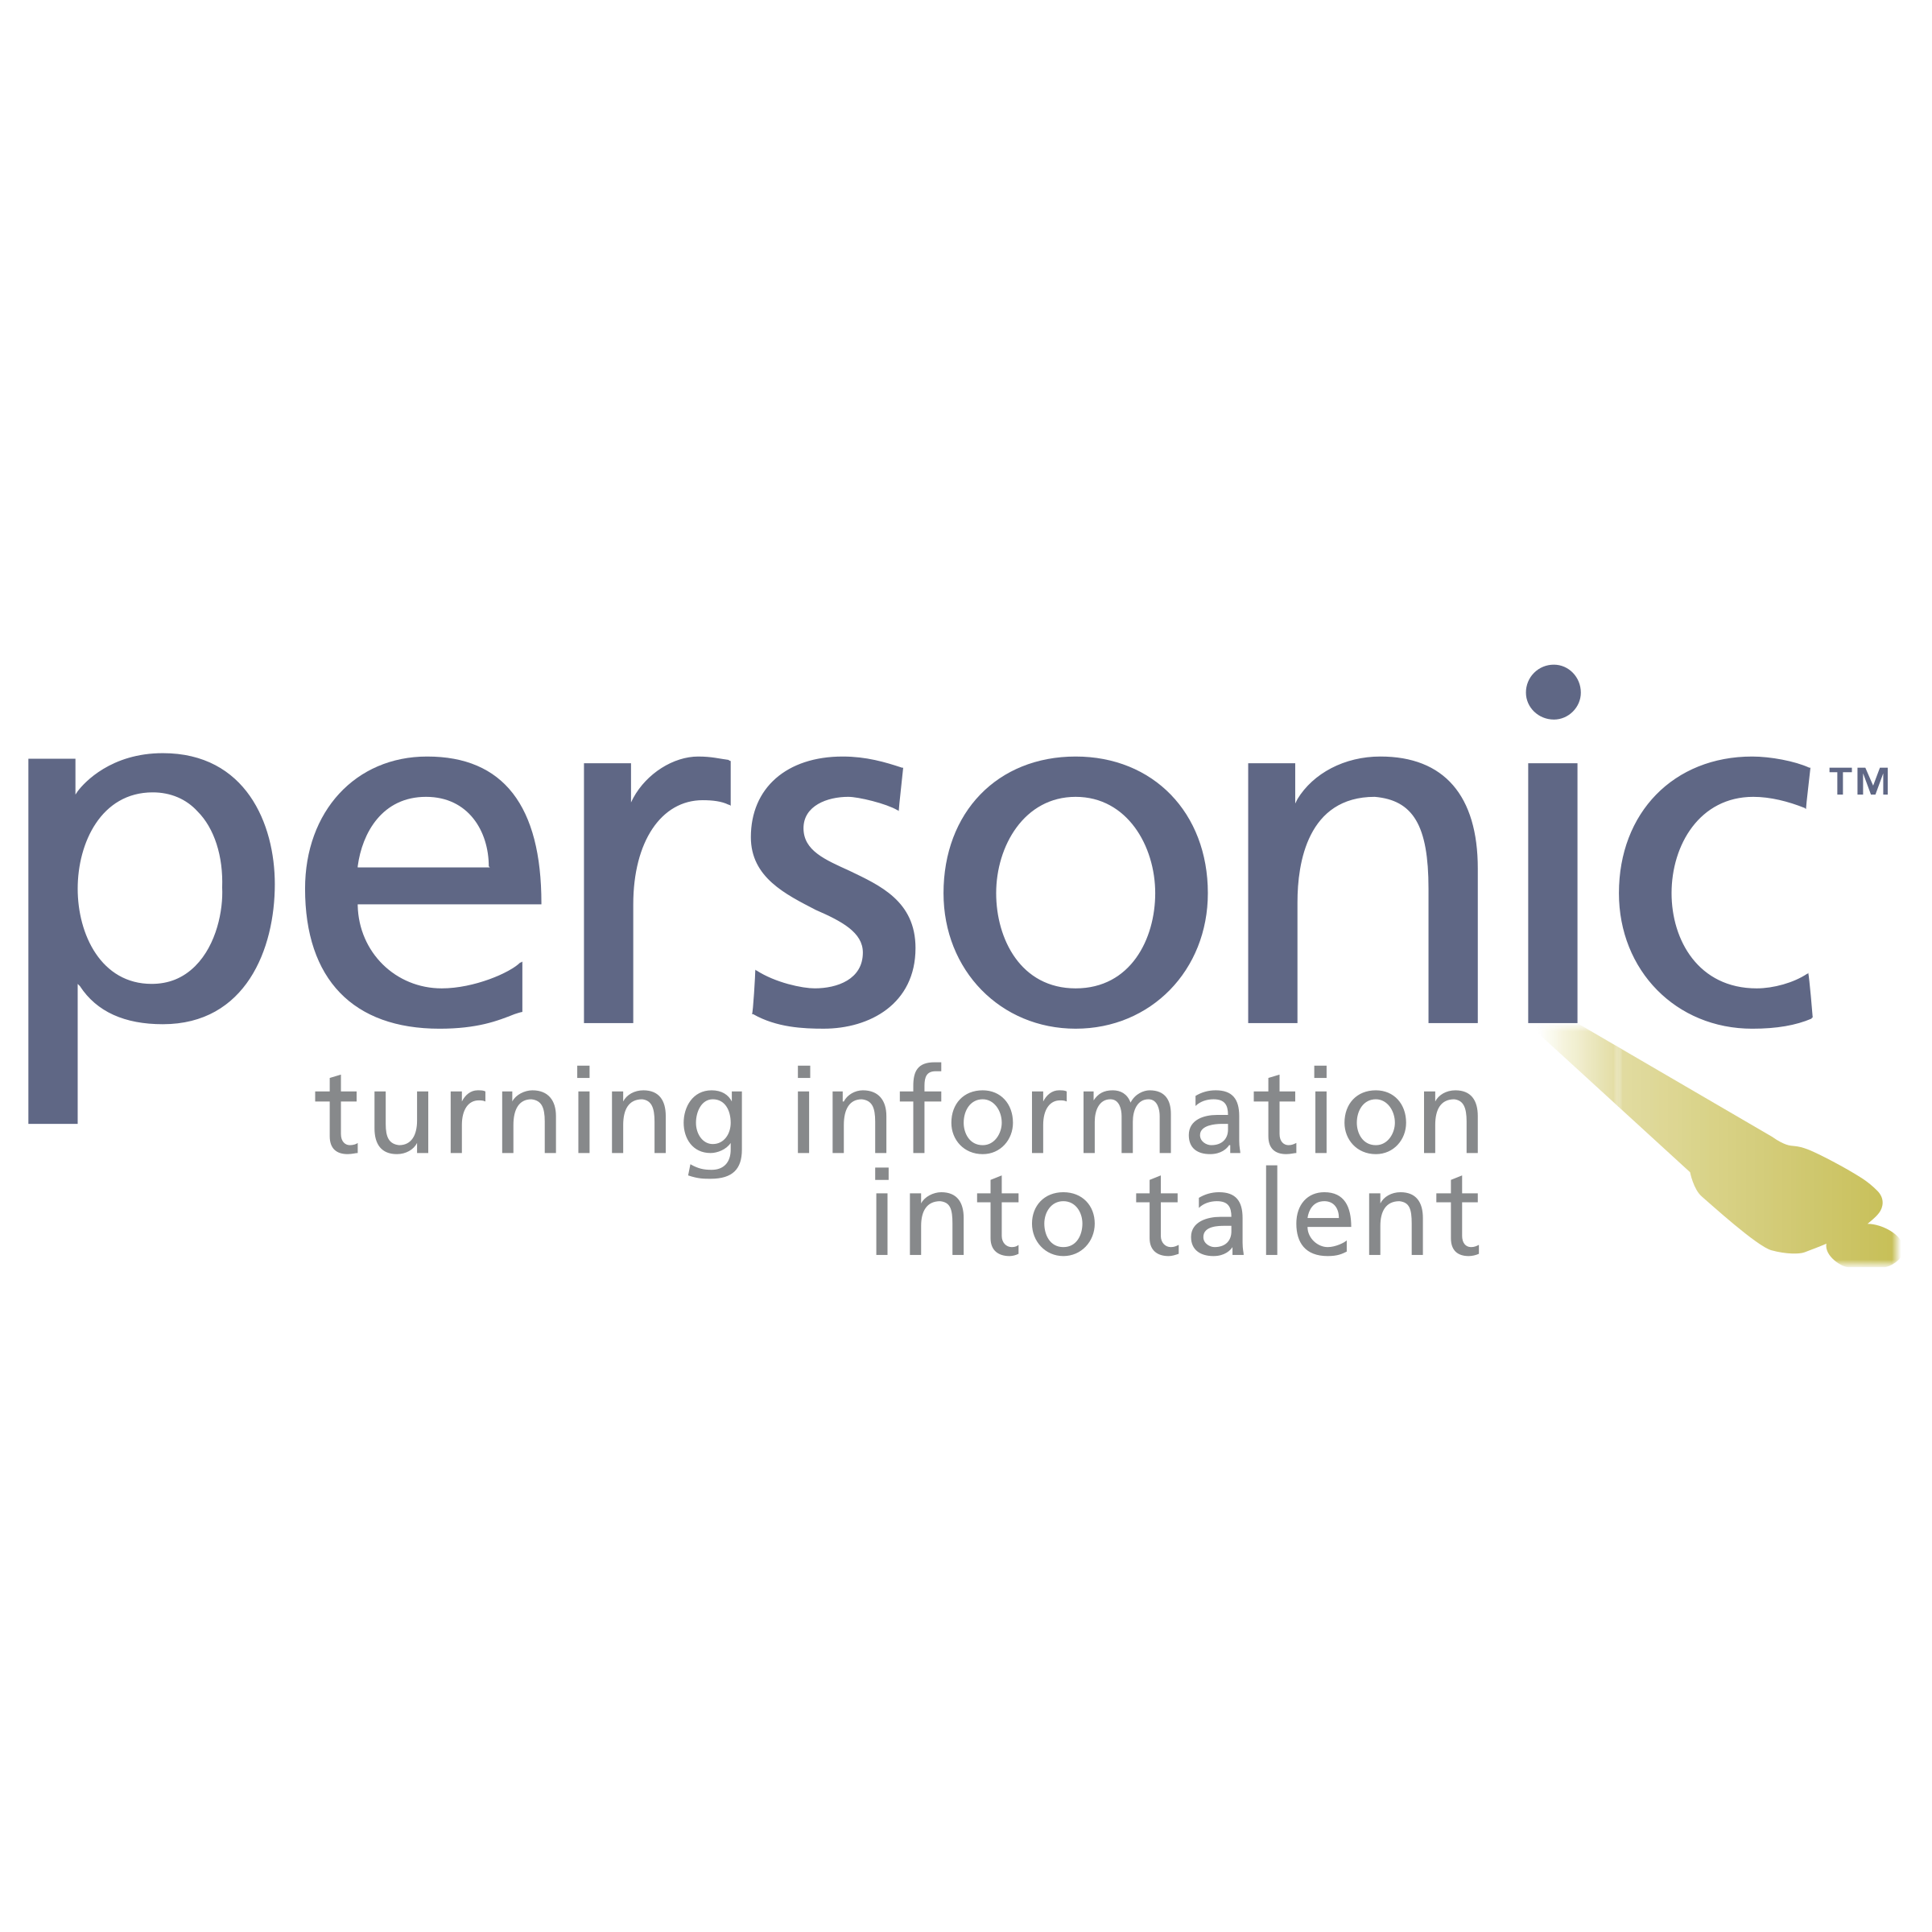 Turn png into vector. Personic software logo transparent